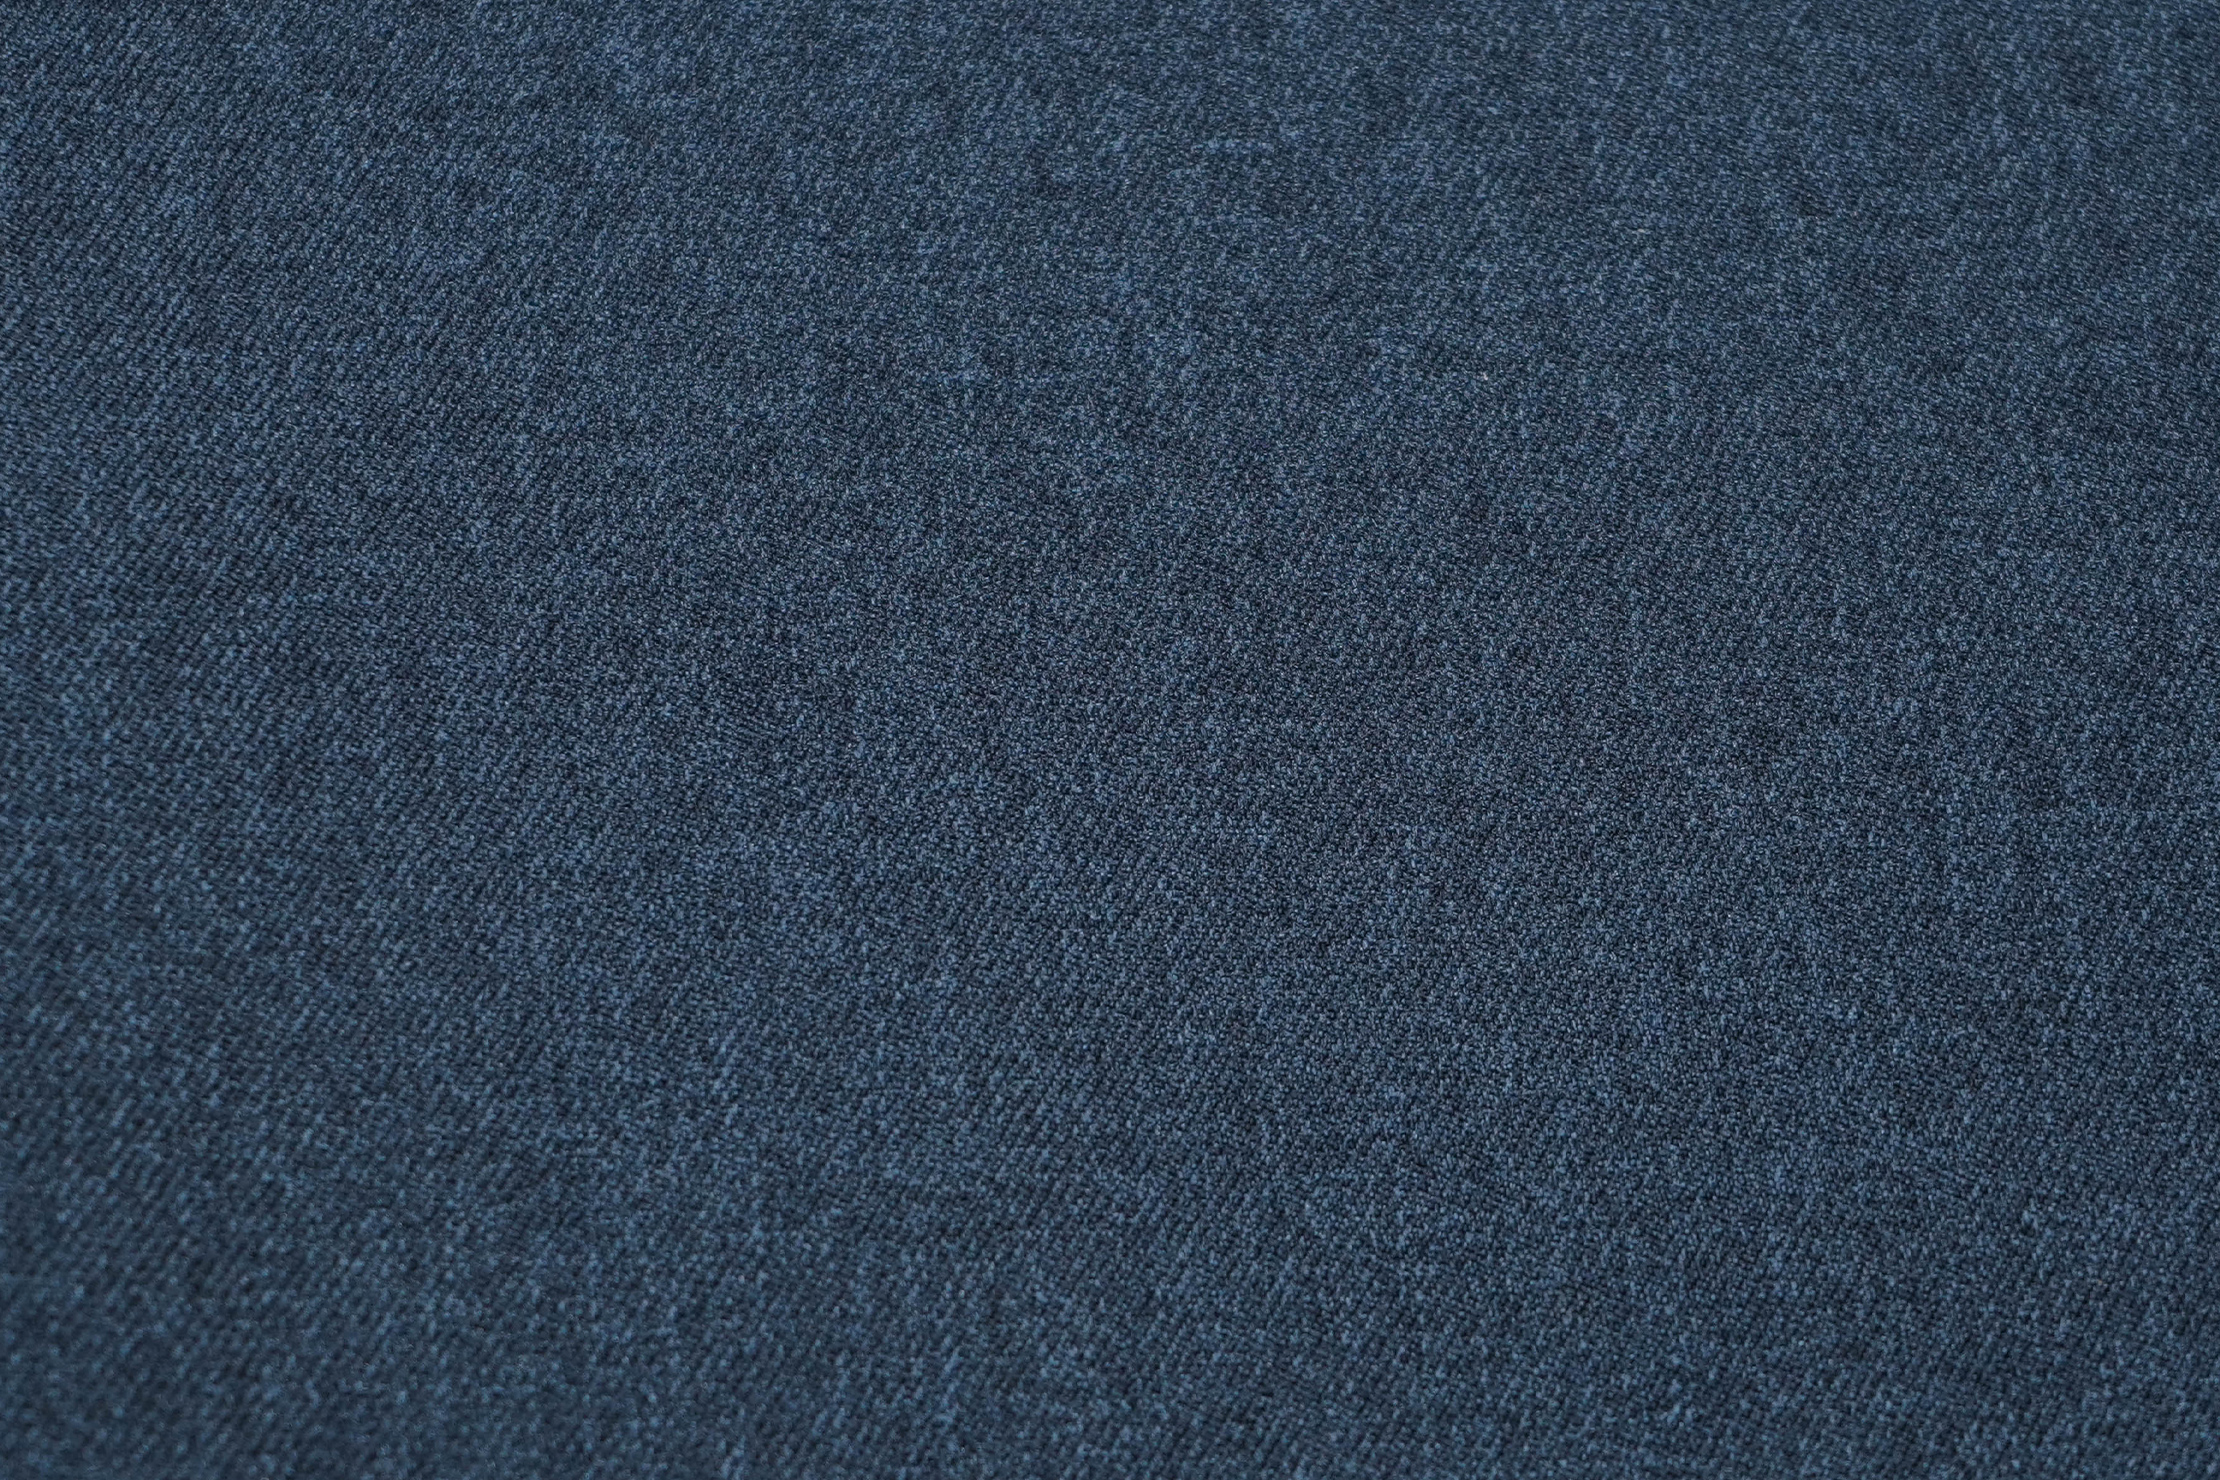 Bluffworks Gramercy Suit Exterior Material